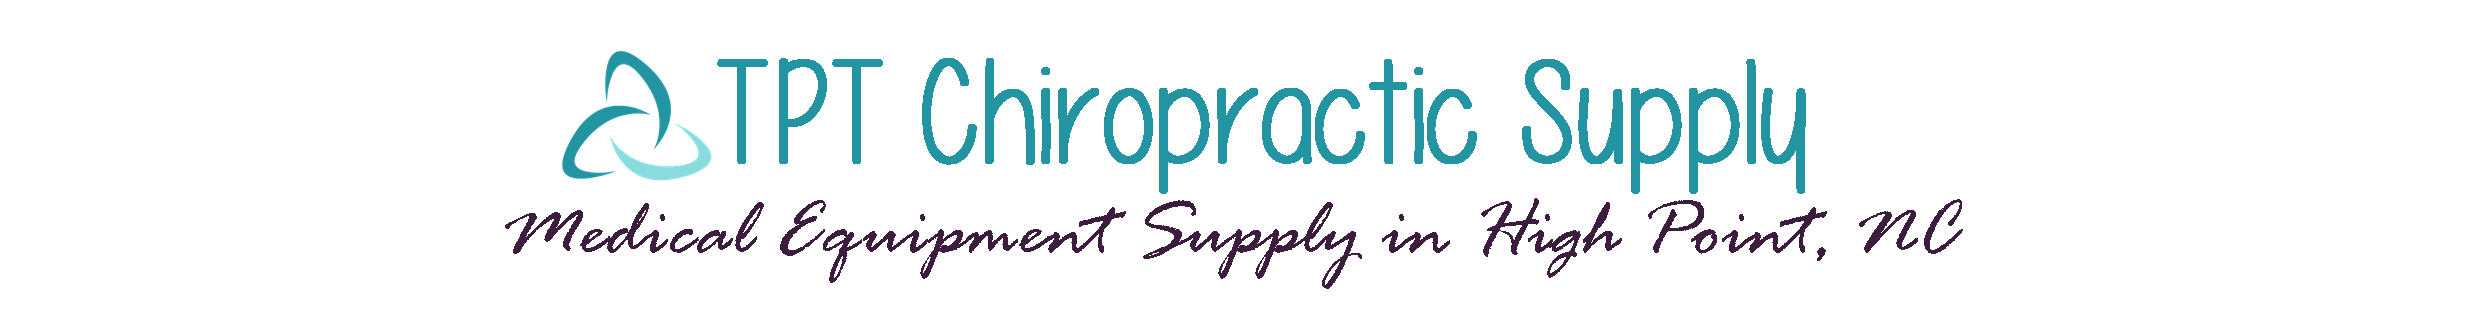 TPT Chiropractic Supply logo